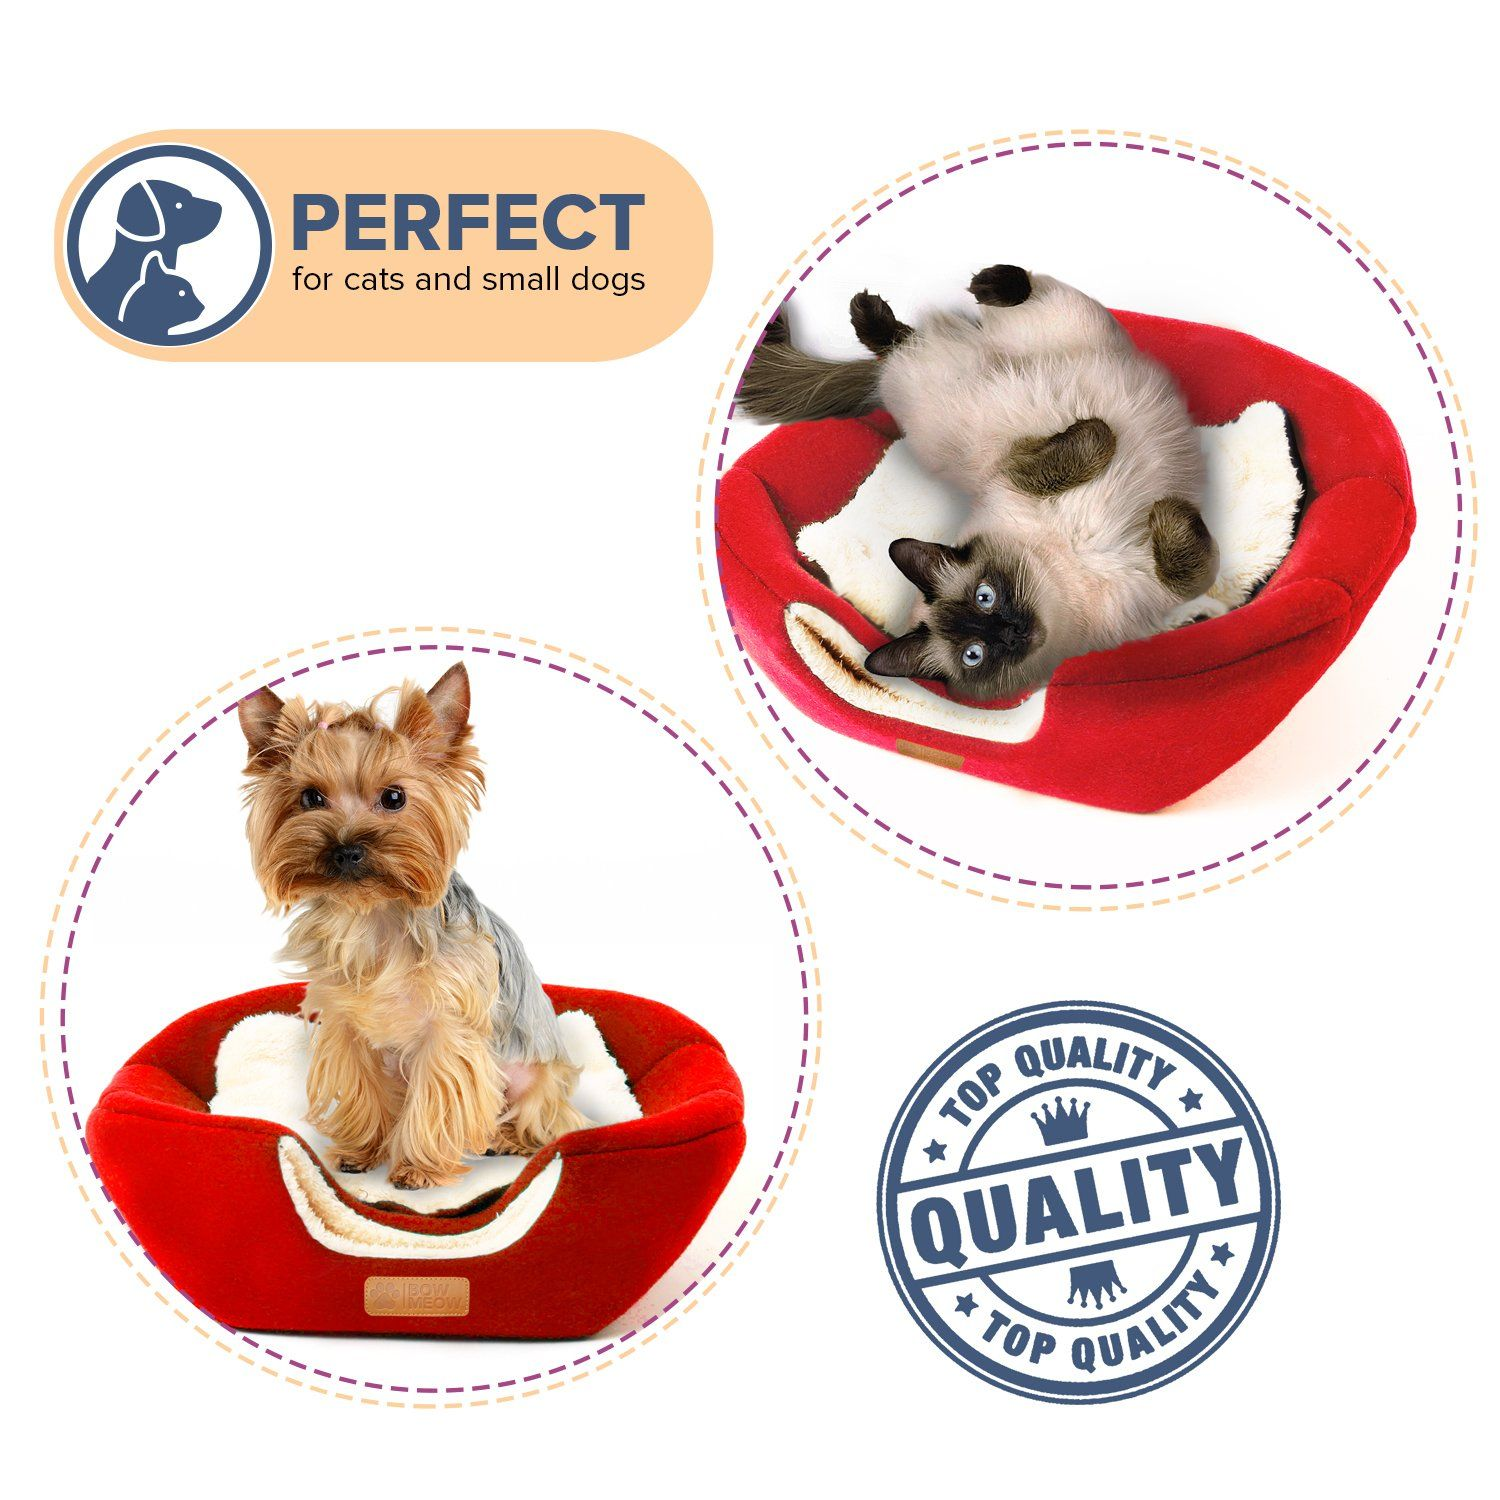 Bow Meow PREMIUM Pet Bed/Cave Cat Bed and Cave Small Dog